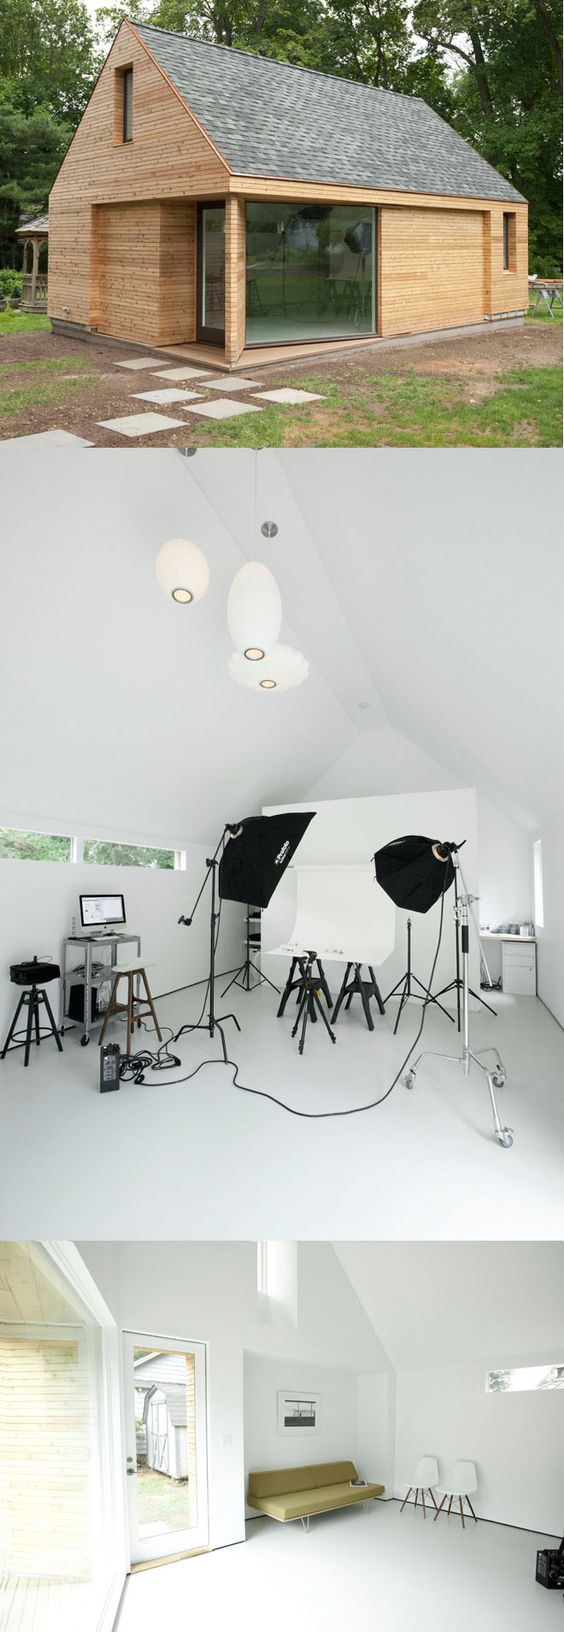 Photo studio in your backyard? hm one can only wish for such spaces